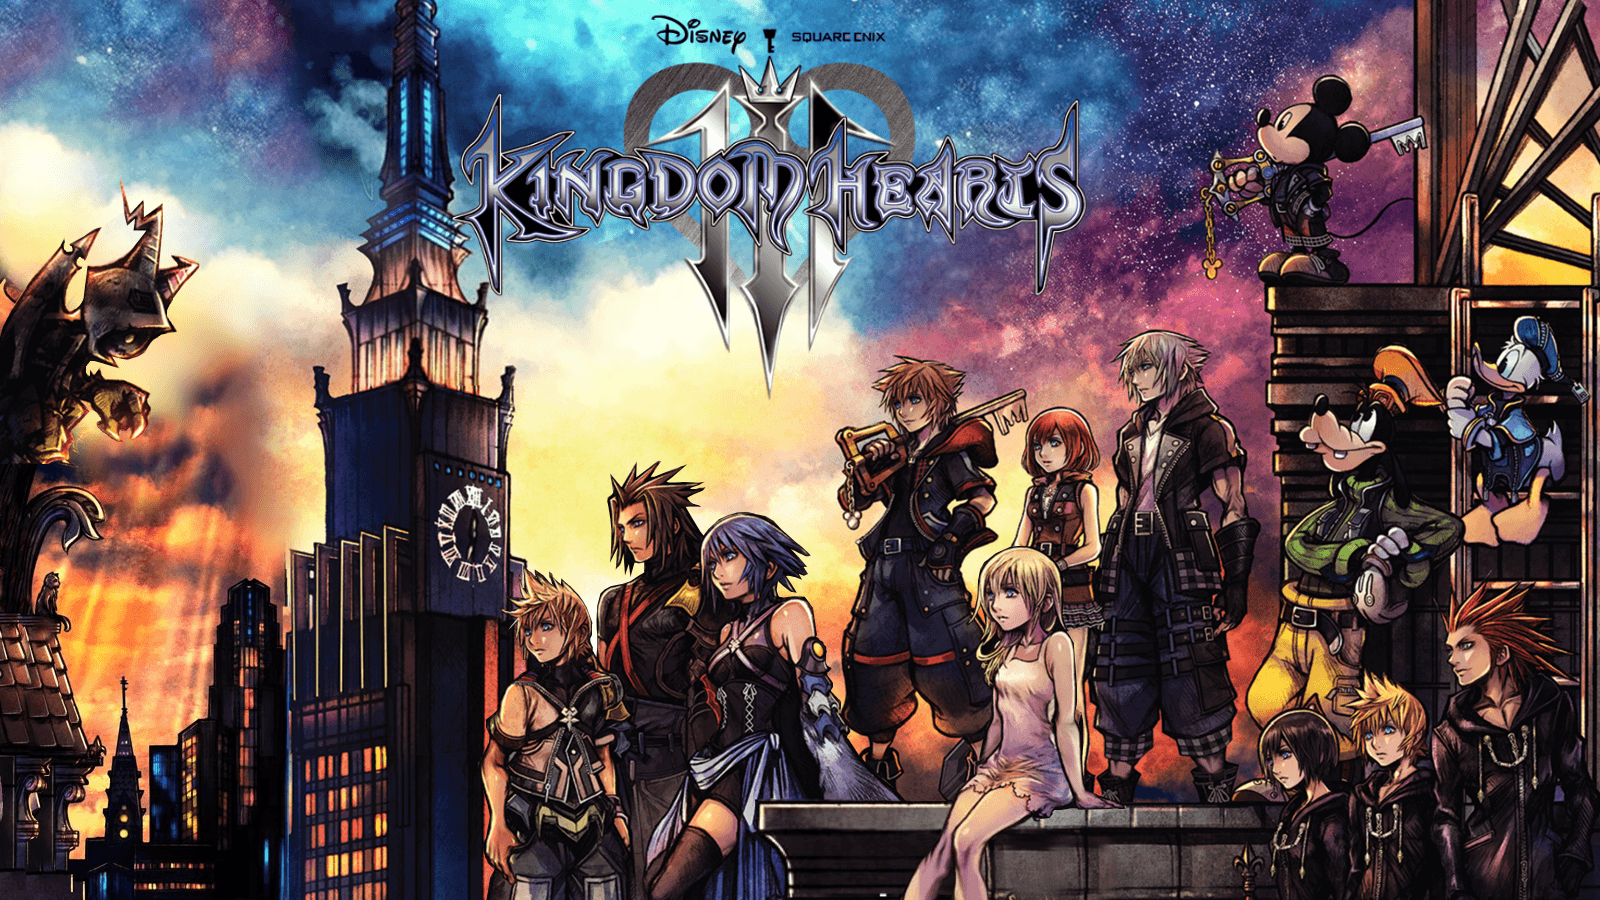 Kingdom Hearts Cover Wallpapers Top Free Kingdom Hearts Cover